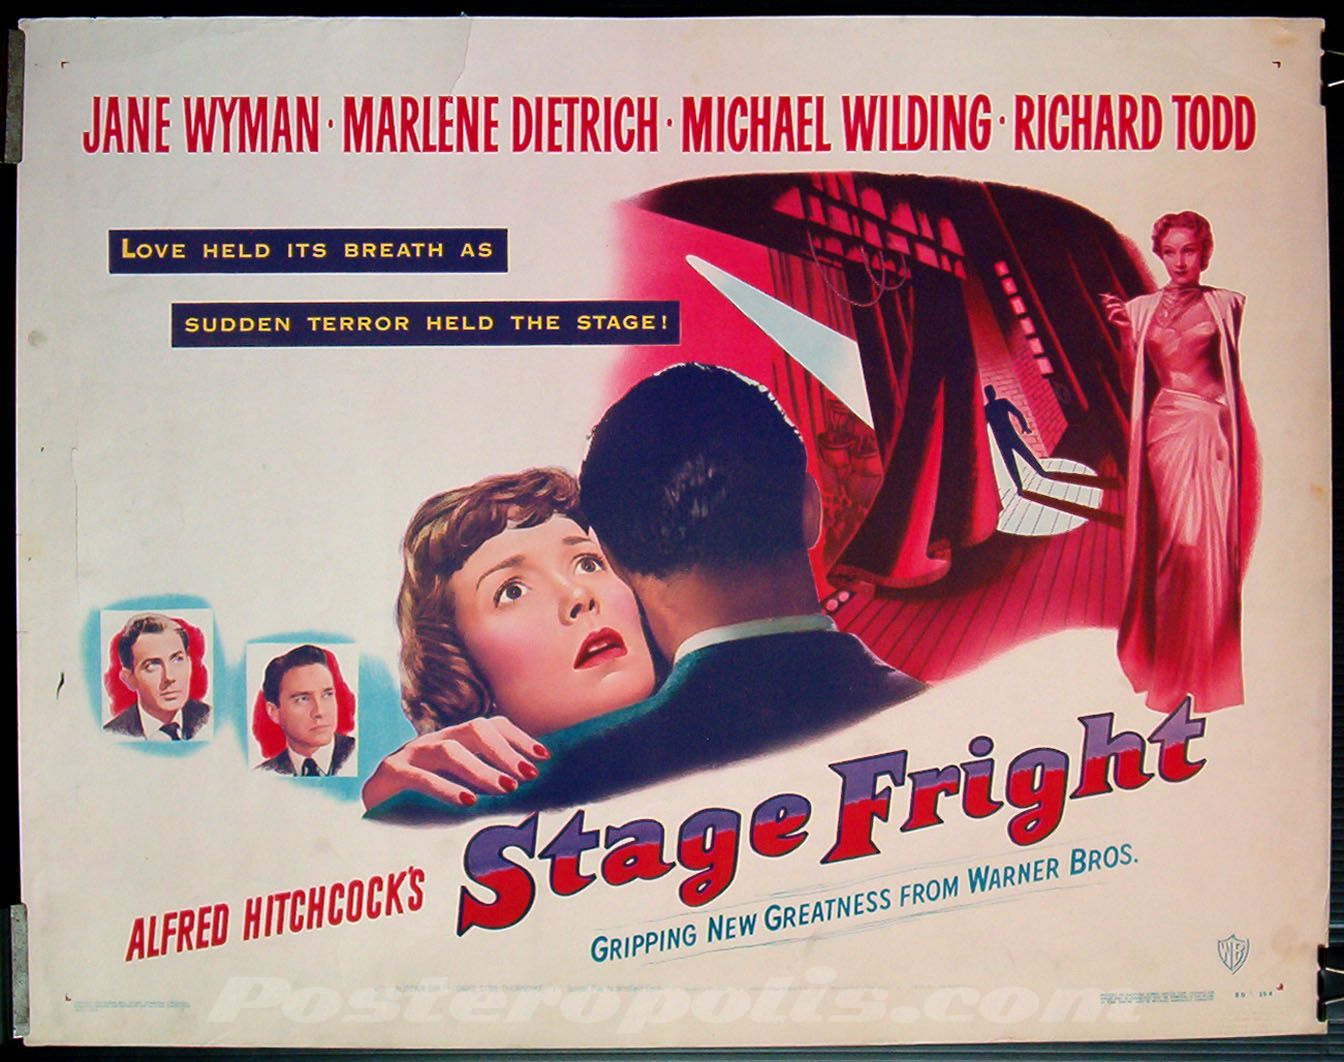 April 15 - Opened on this date in 1950: Stage Fright. #Hitchcock